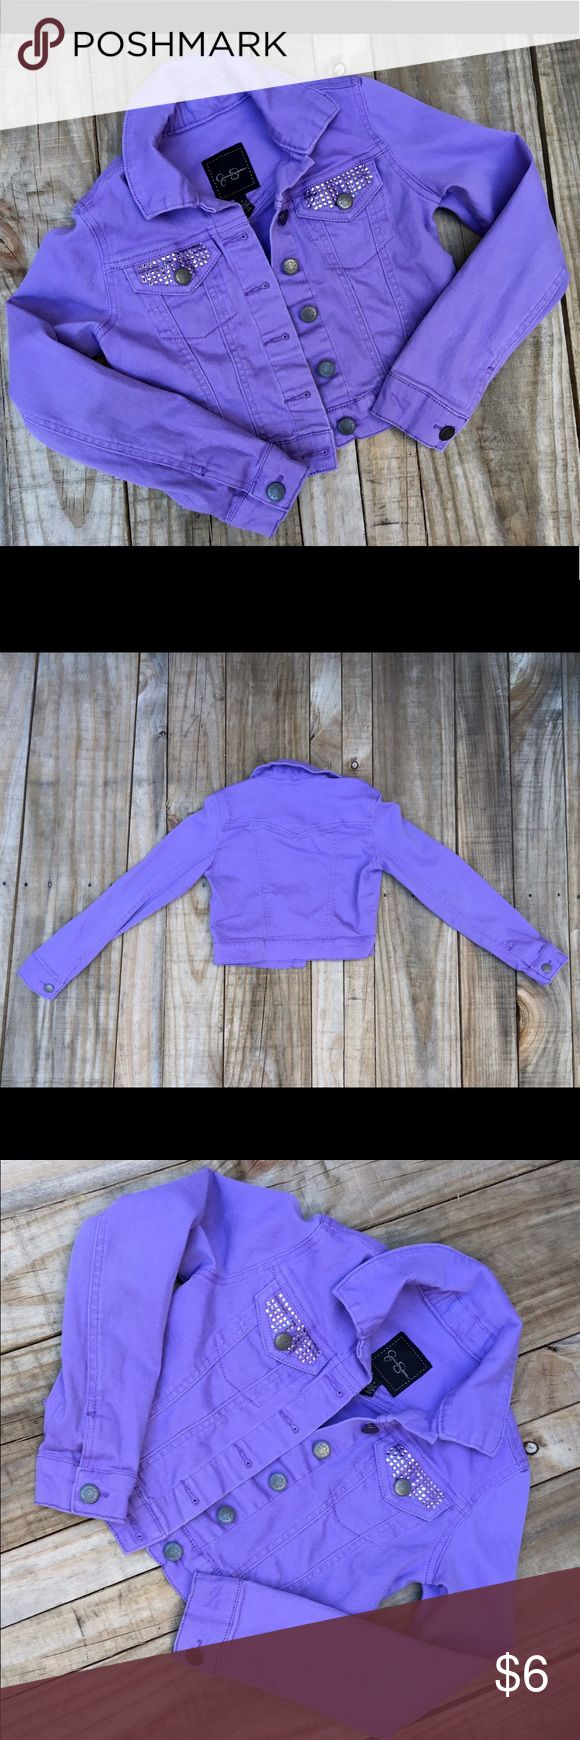 Jessica Simpson Lavender Cotton Denim Jacket Youth Jessica Simpson Lavender Embellished Cotton Denim Jacket  Youth Misses Size Small. Pink Rhinestones on Double Front Pockets Button Down. Missing a Couple of Rhinestones Which Can Be Replaced. Jessica Simpson Jackets & Coats Jean Jackets